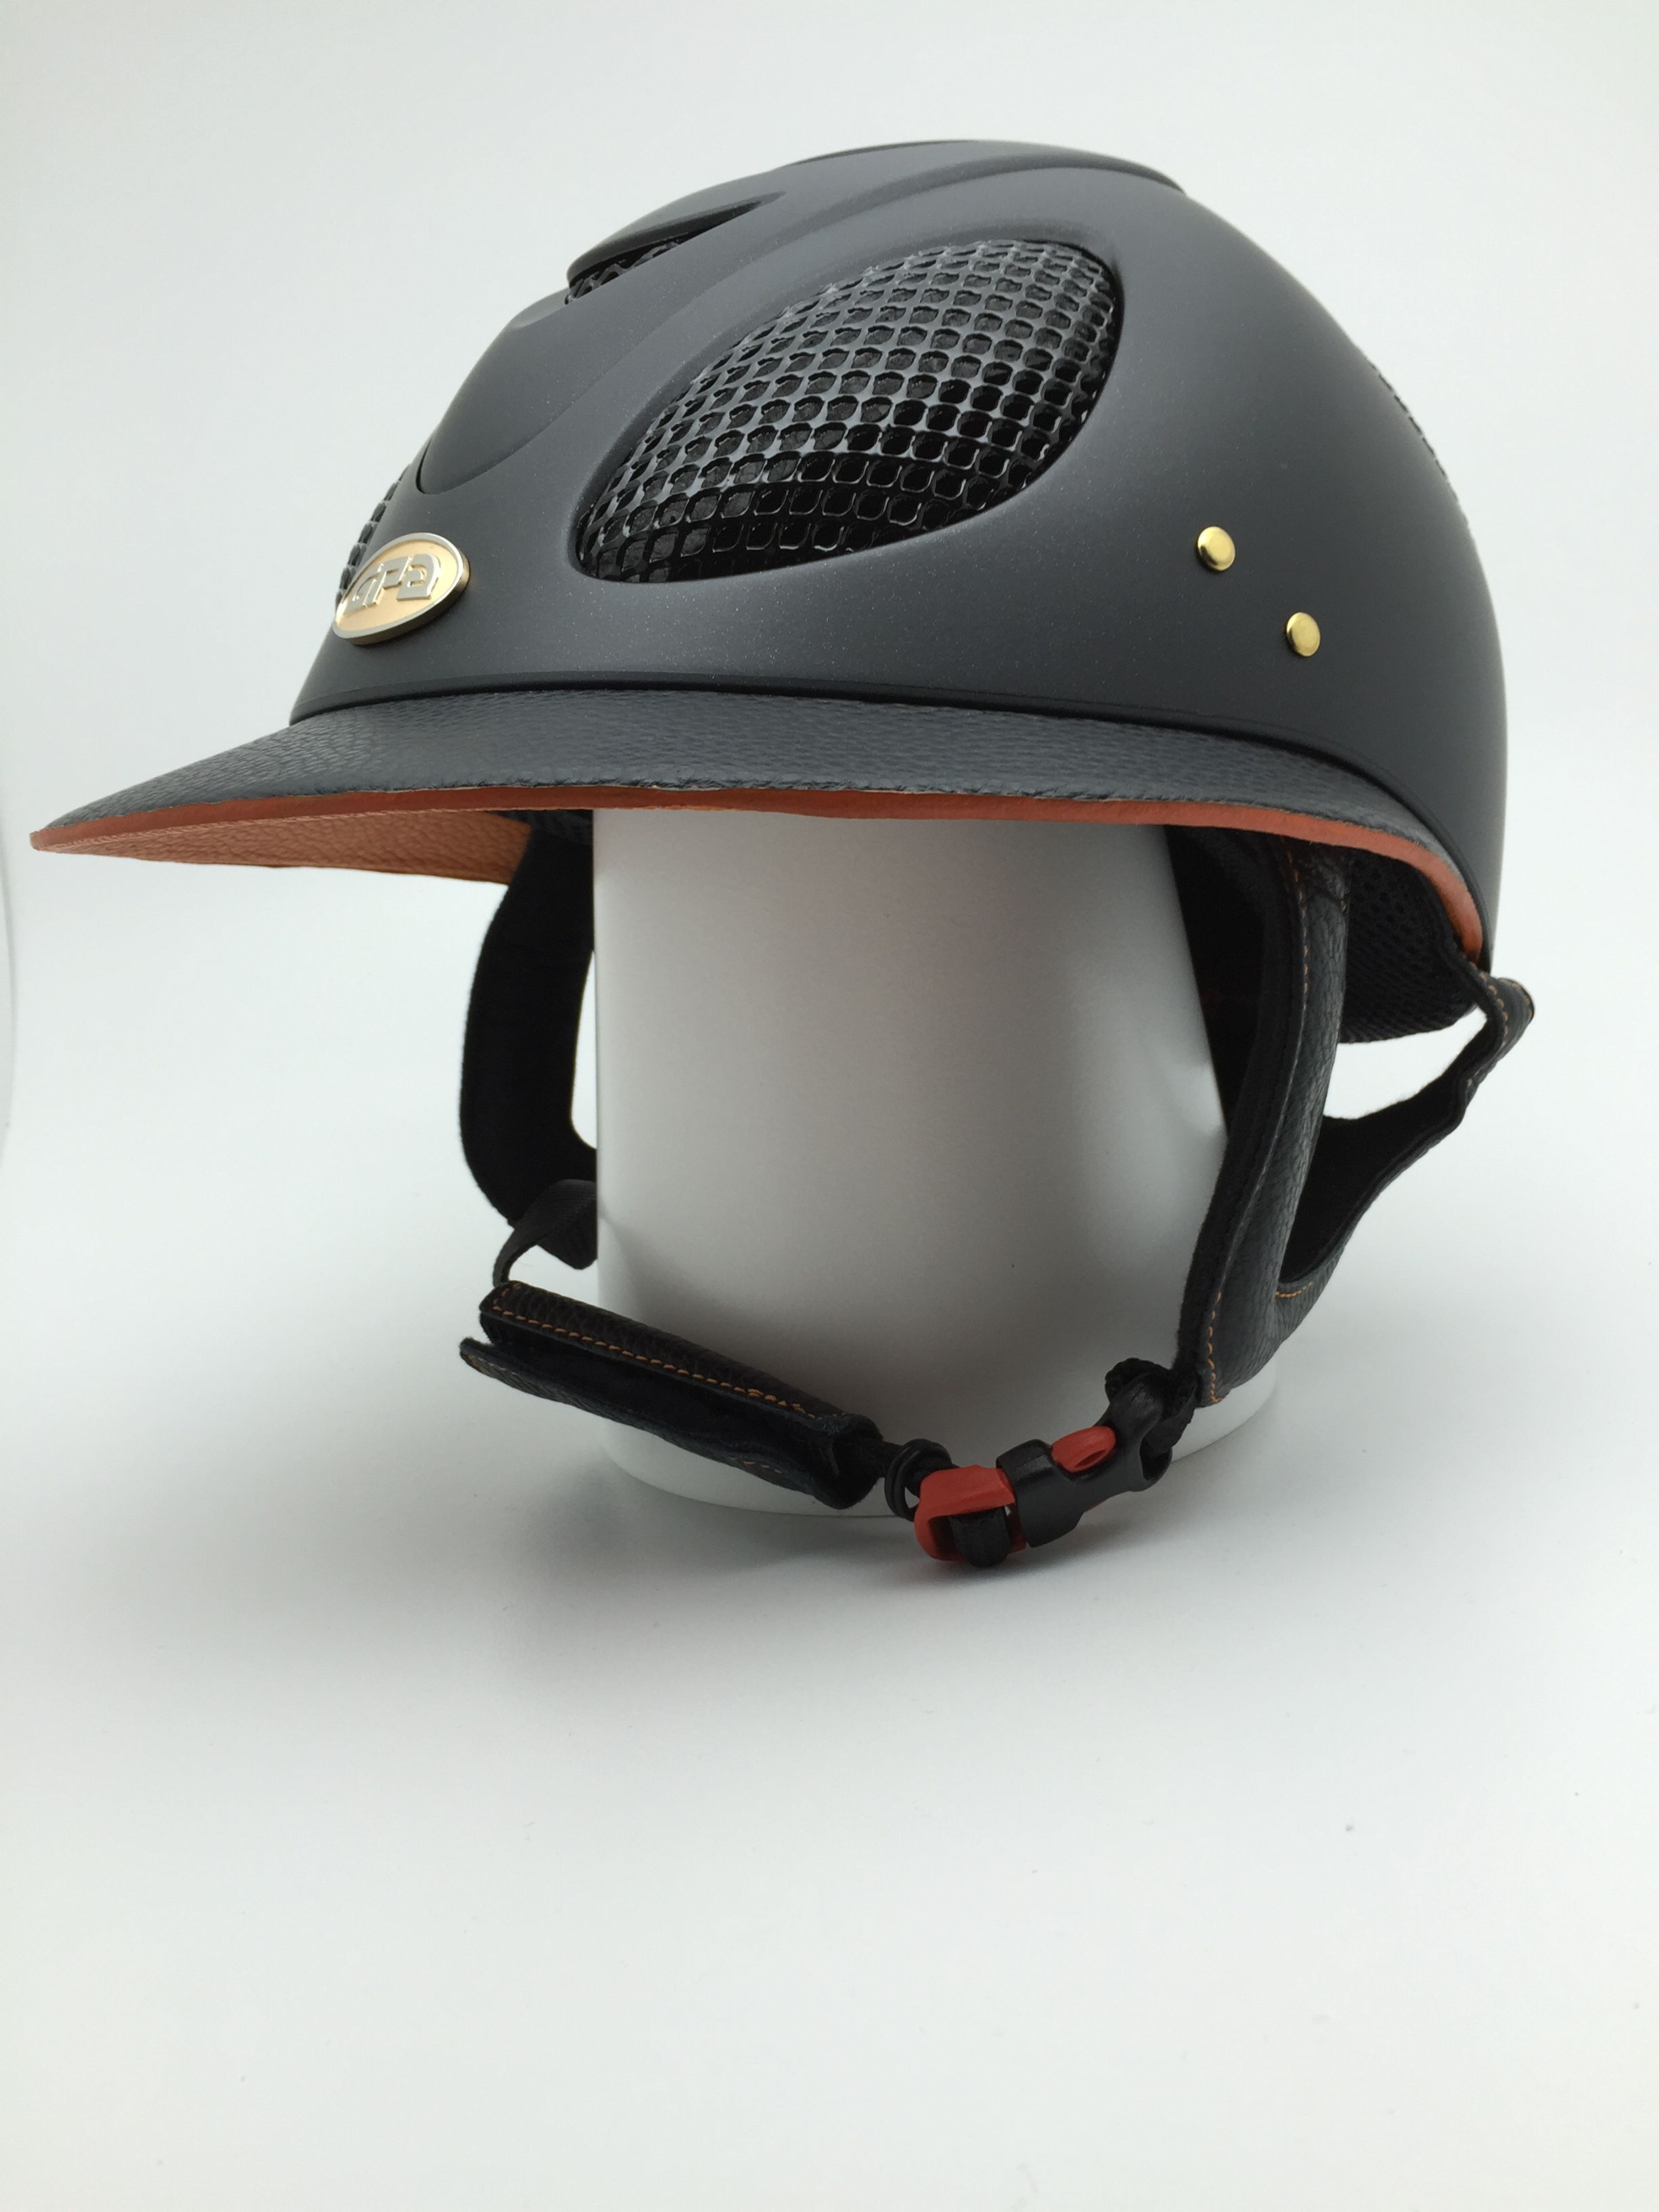 Pin By Hannah Graham On Hats Or Helmets Riding Helmets Riding